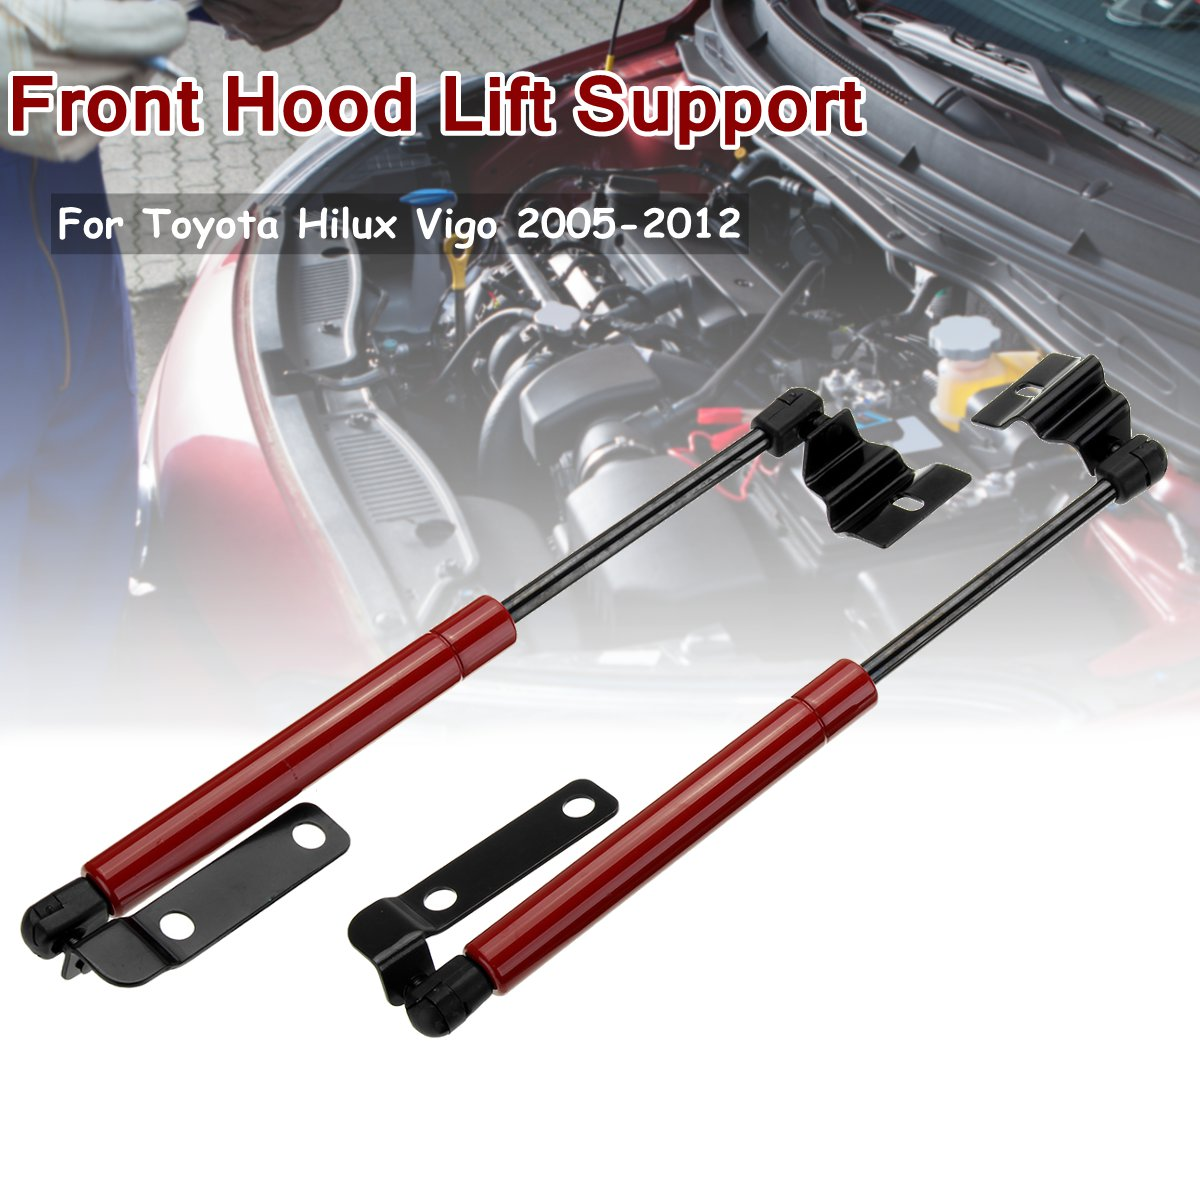 2X Front Engine Cover Bonnet Hood Shock Lift Struts Bar Support Arm Gas Hydraulic For Toyota Hilux Vigo SR5 2005 2006 - 2012